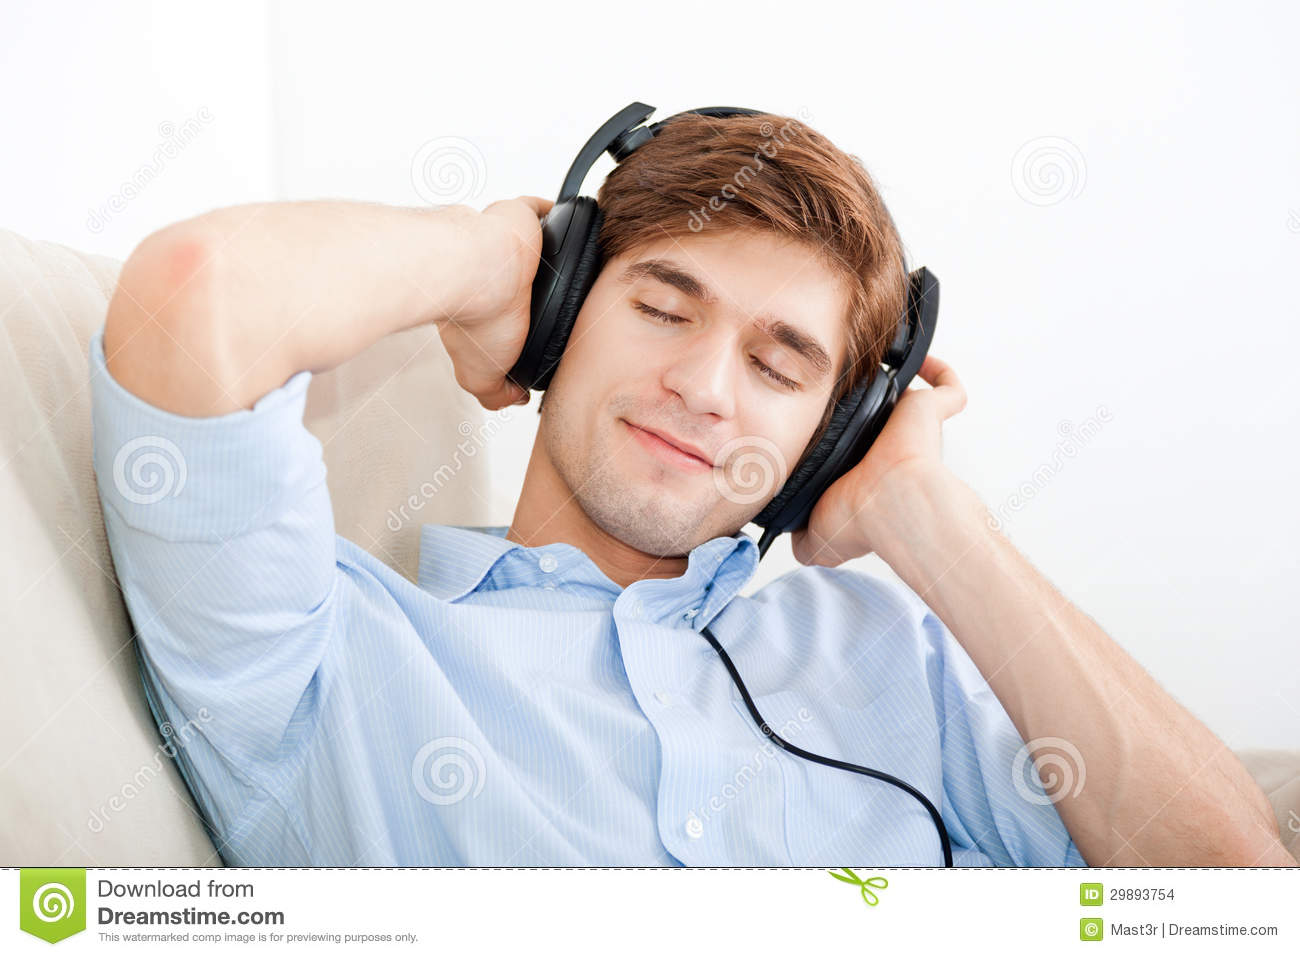 man-listening-music-headphone-sofa-home-